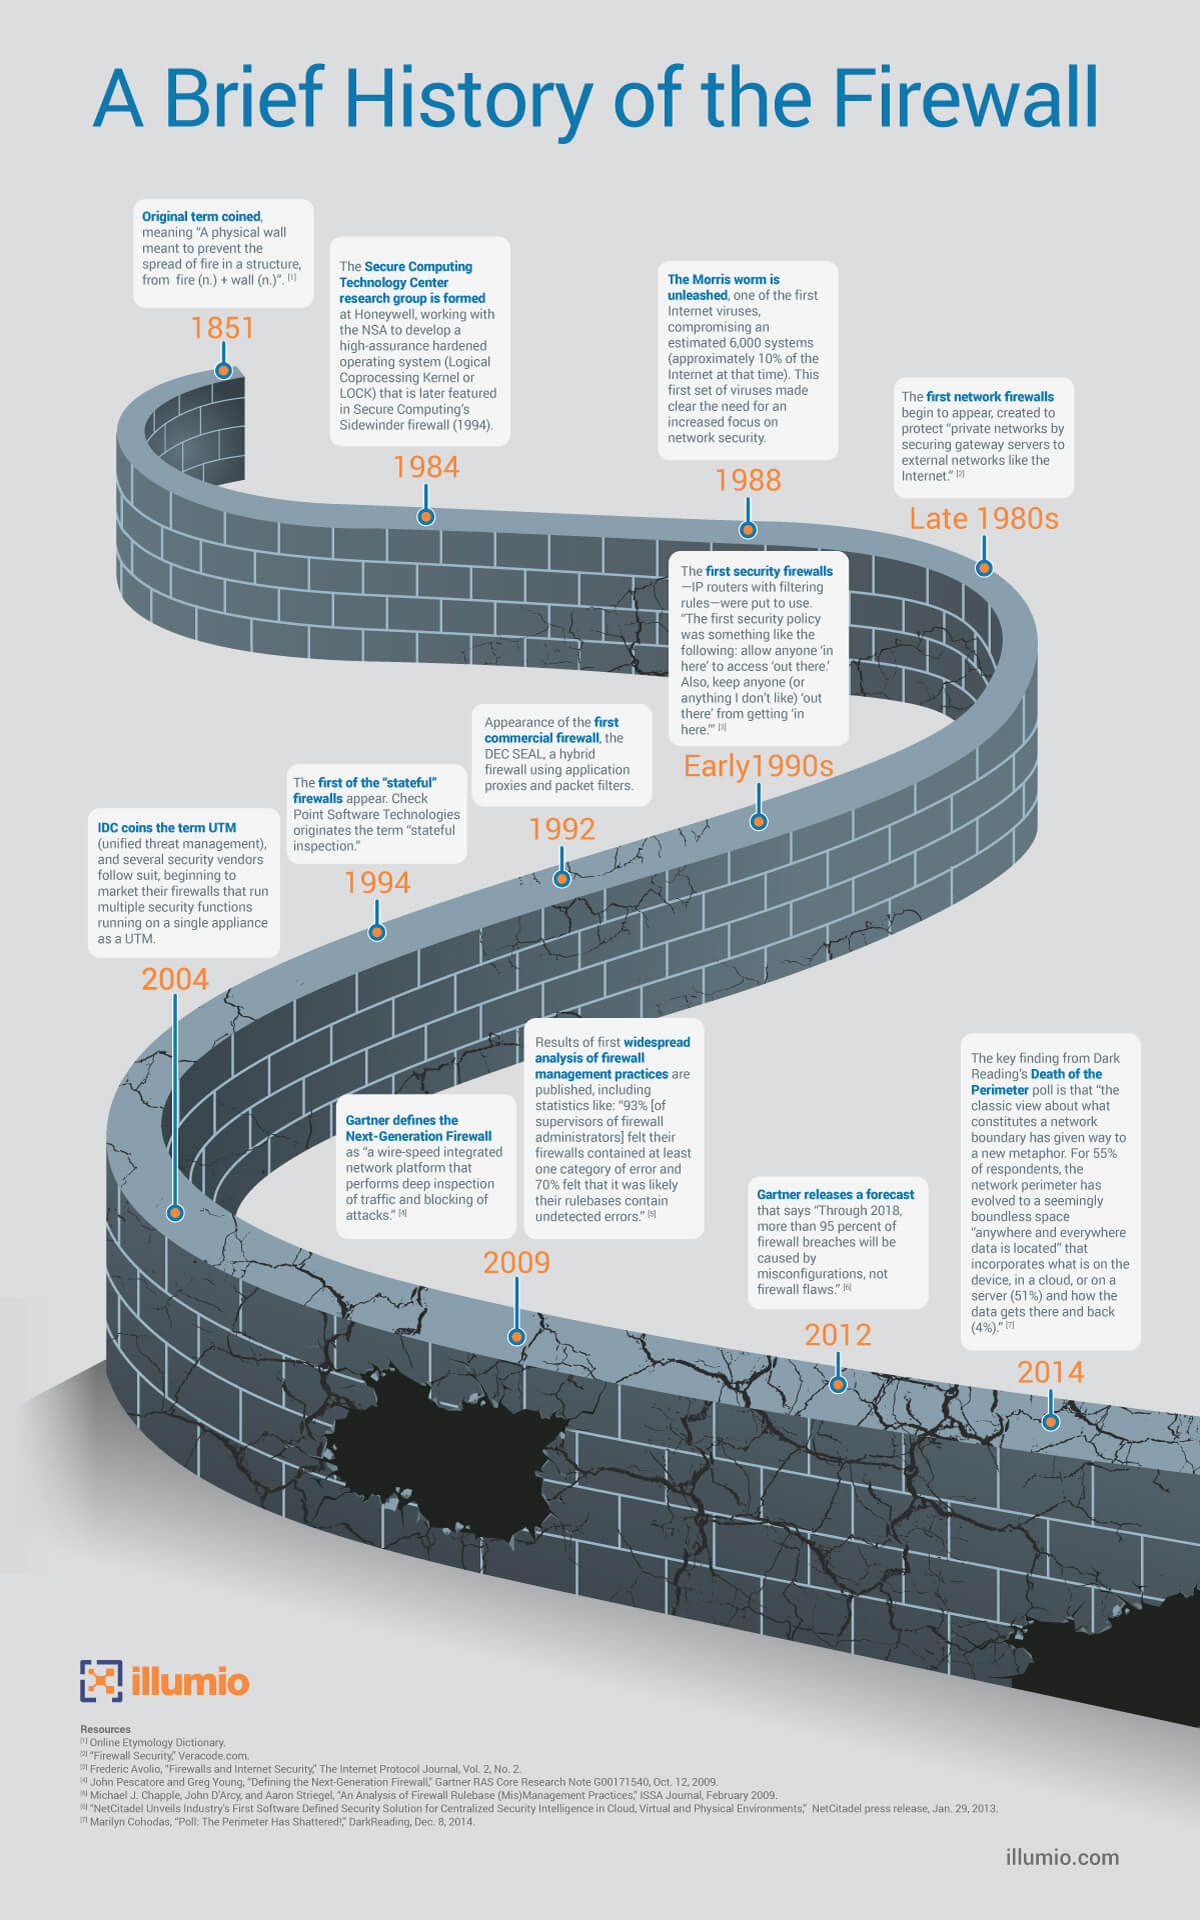 A Brief History of the Firewall